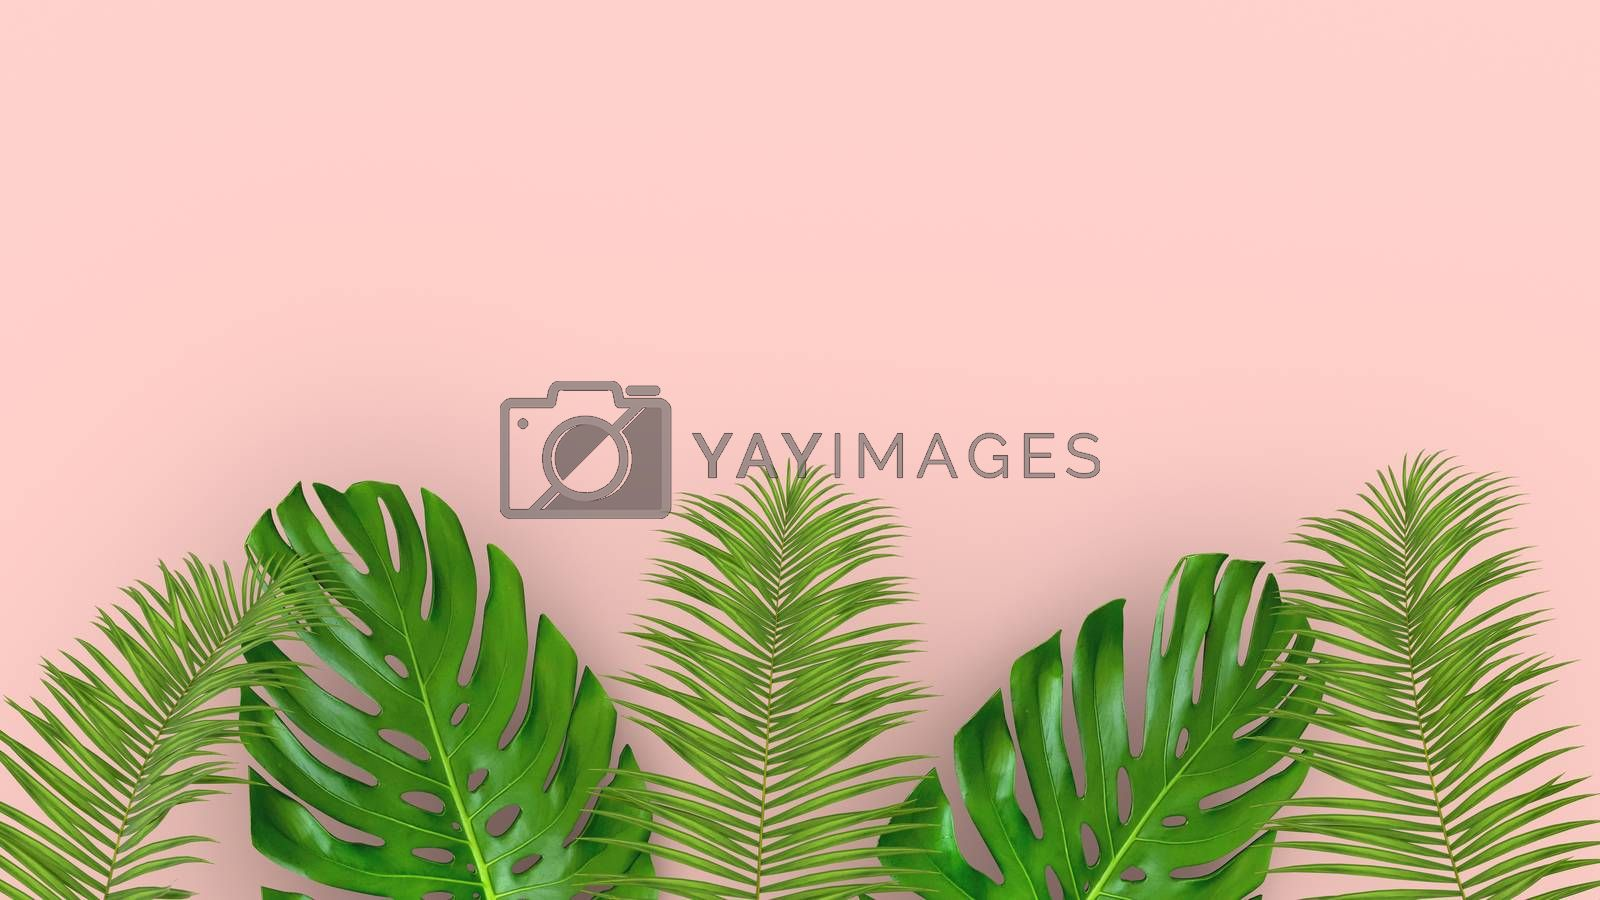 3D render of realistic palm leaves on pink background for cosmetic ad or fashion illustration. Tropical frame exotic banana palm. Sale banner design.